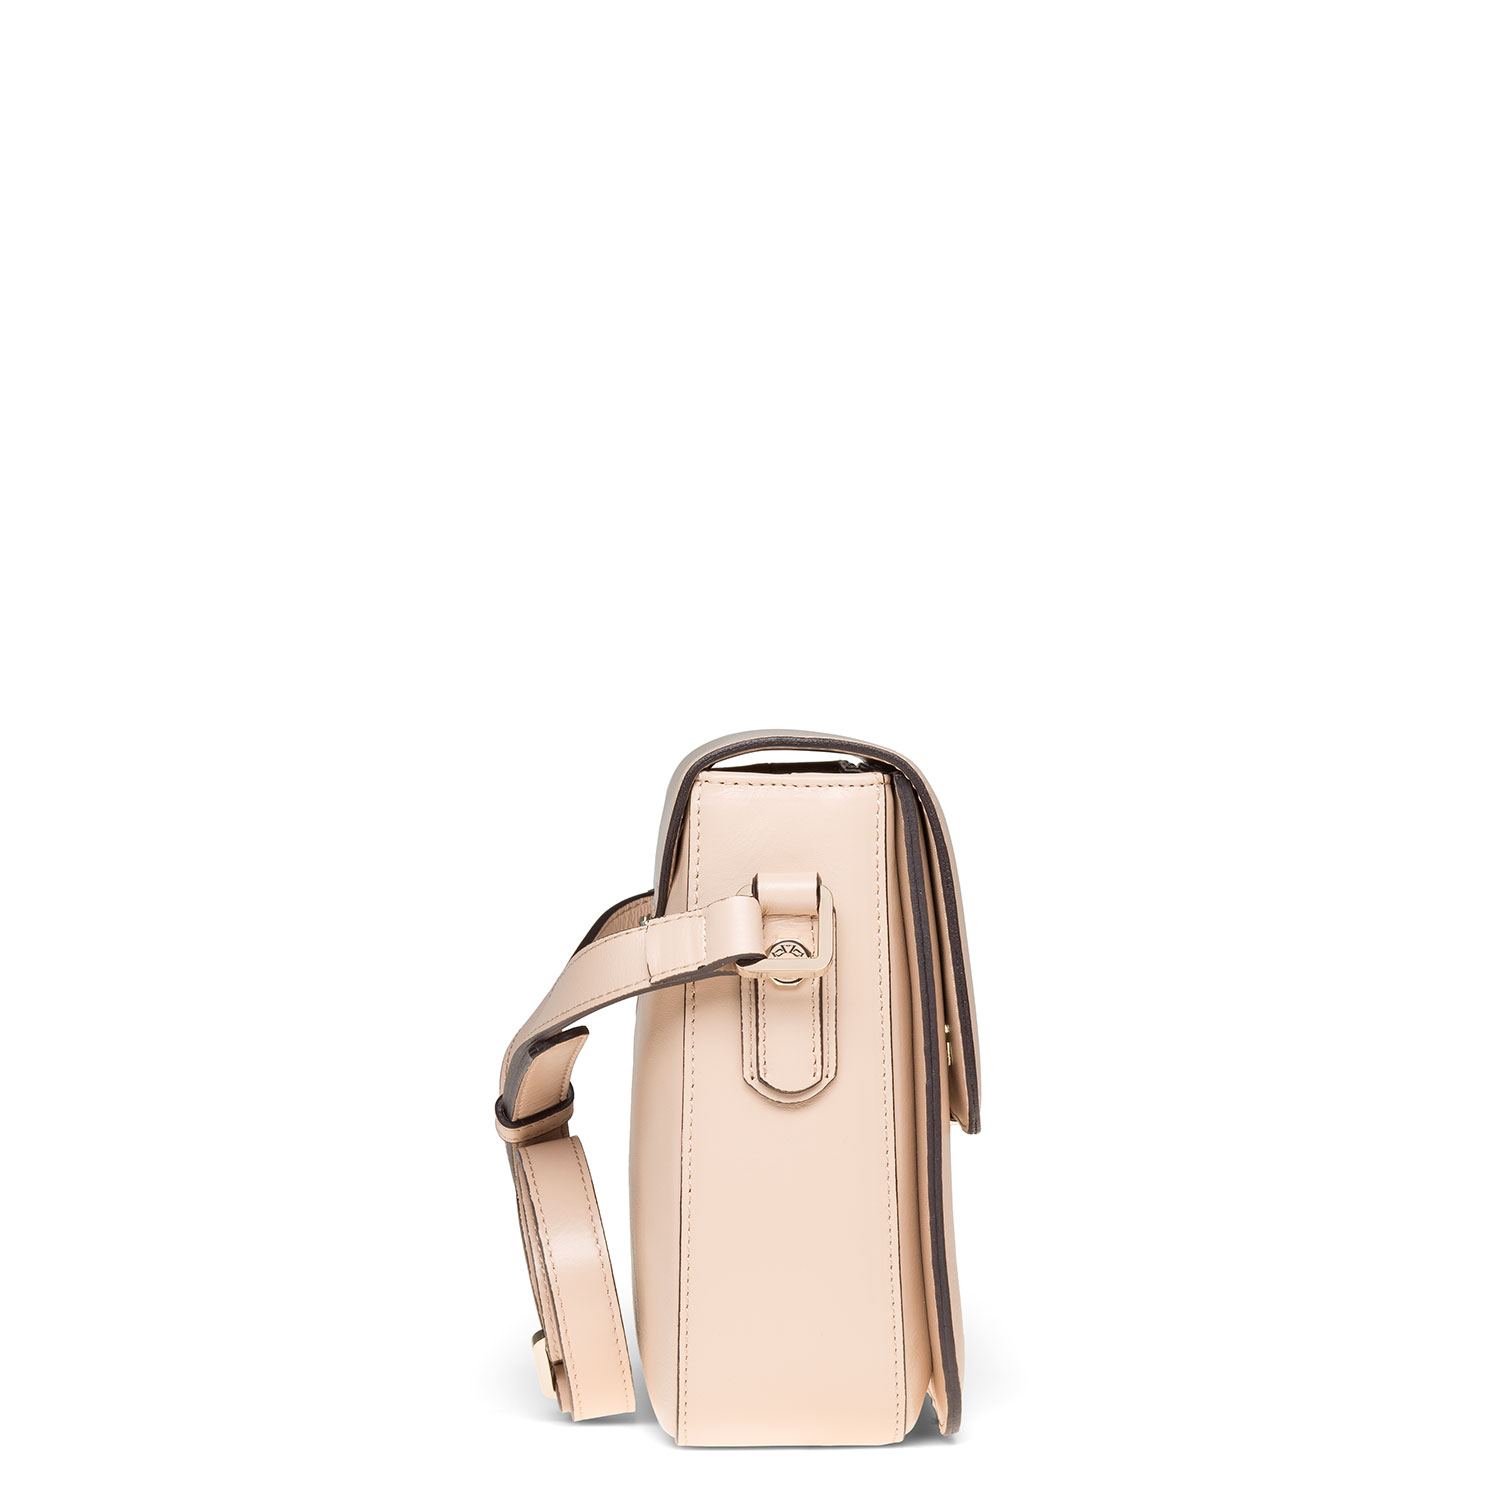 Women's bag CARLO PAZOLINI BS-N9294-33